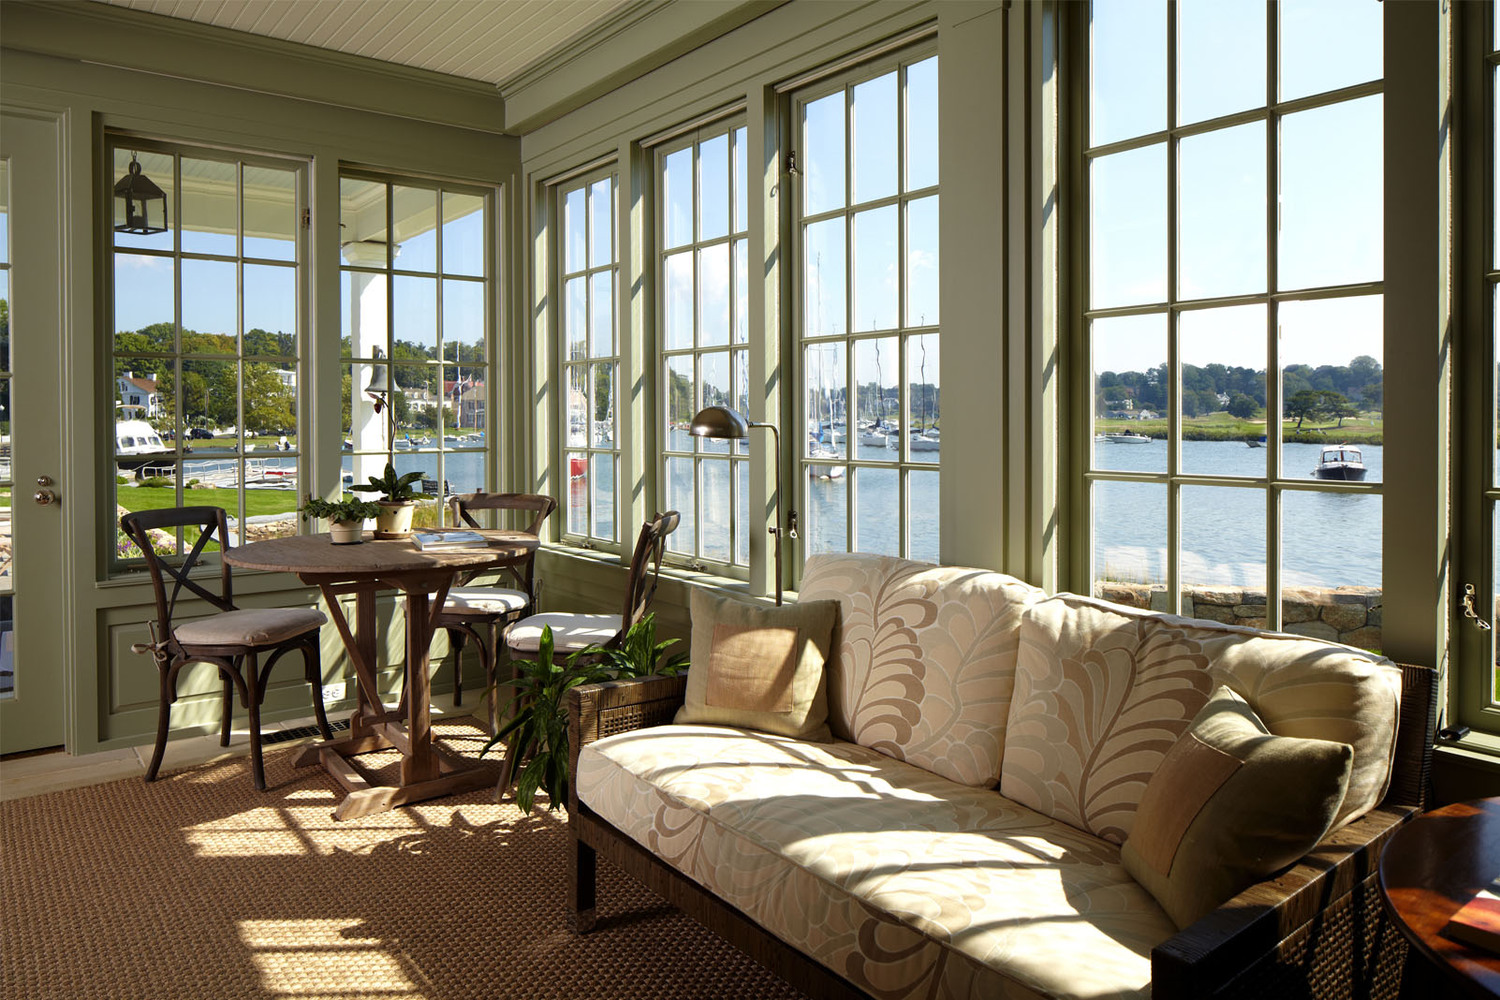 Unique Sunroom Furniture Layout Ideas To Get How Redecorate Your Sunroom With sunroom furniture layout ideas